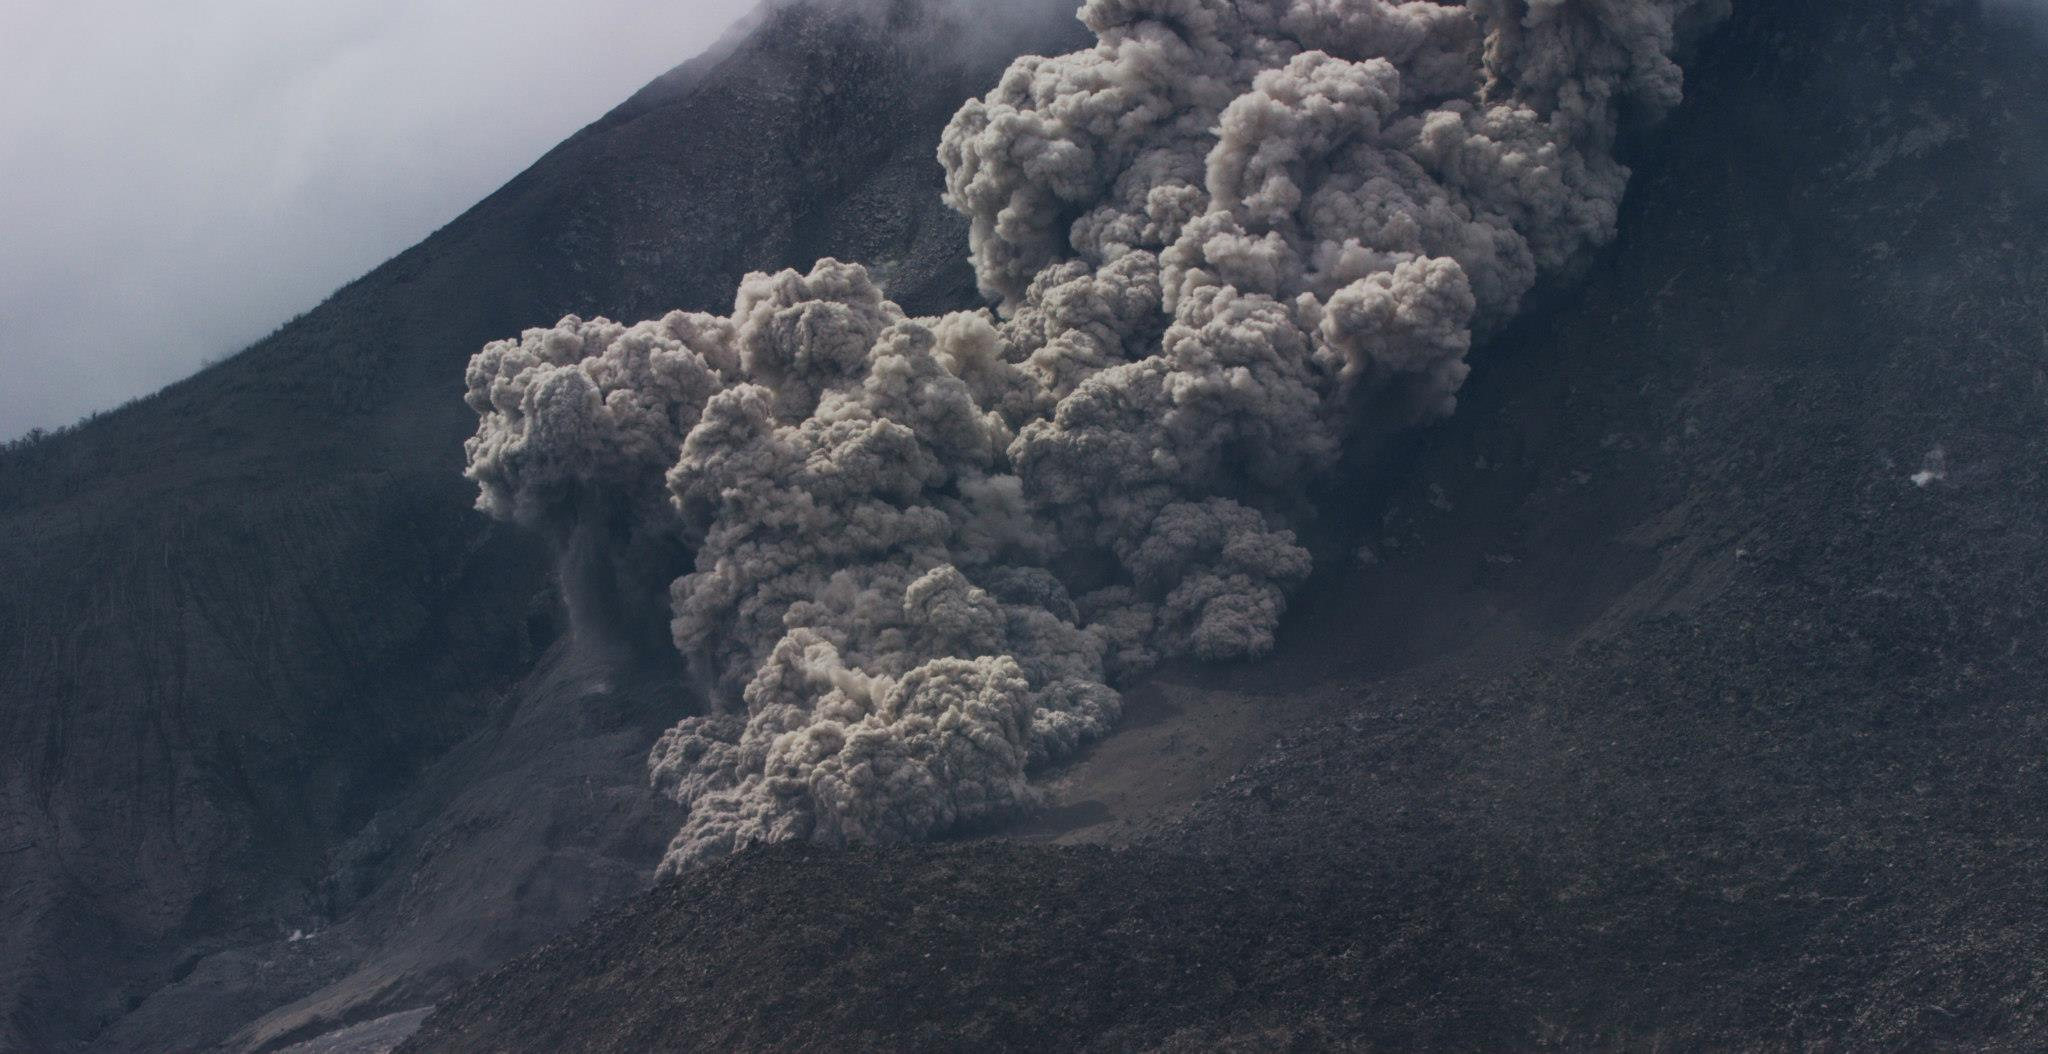 Volcano stock footage - pyroclastic flow - explosion